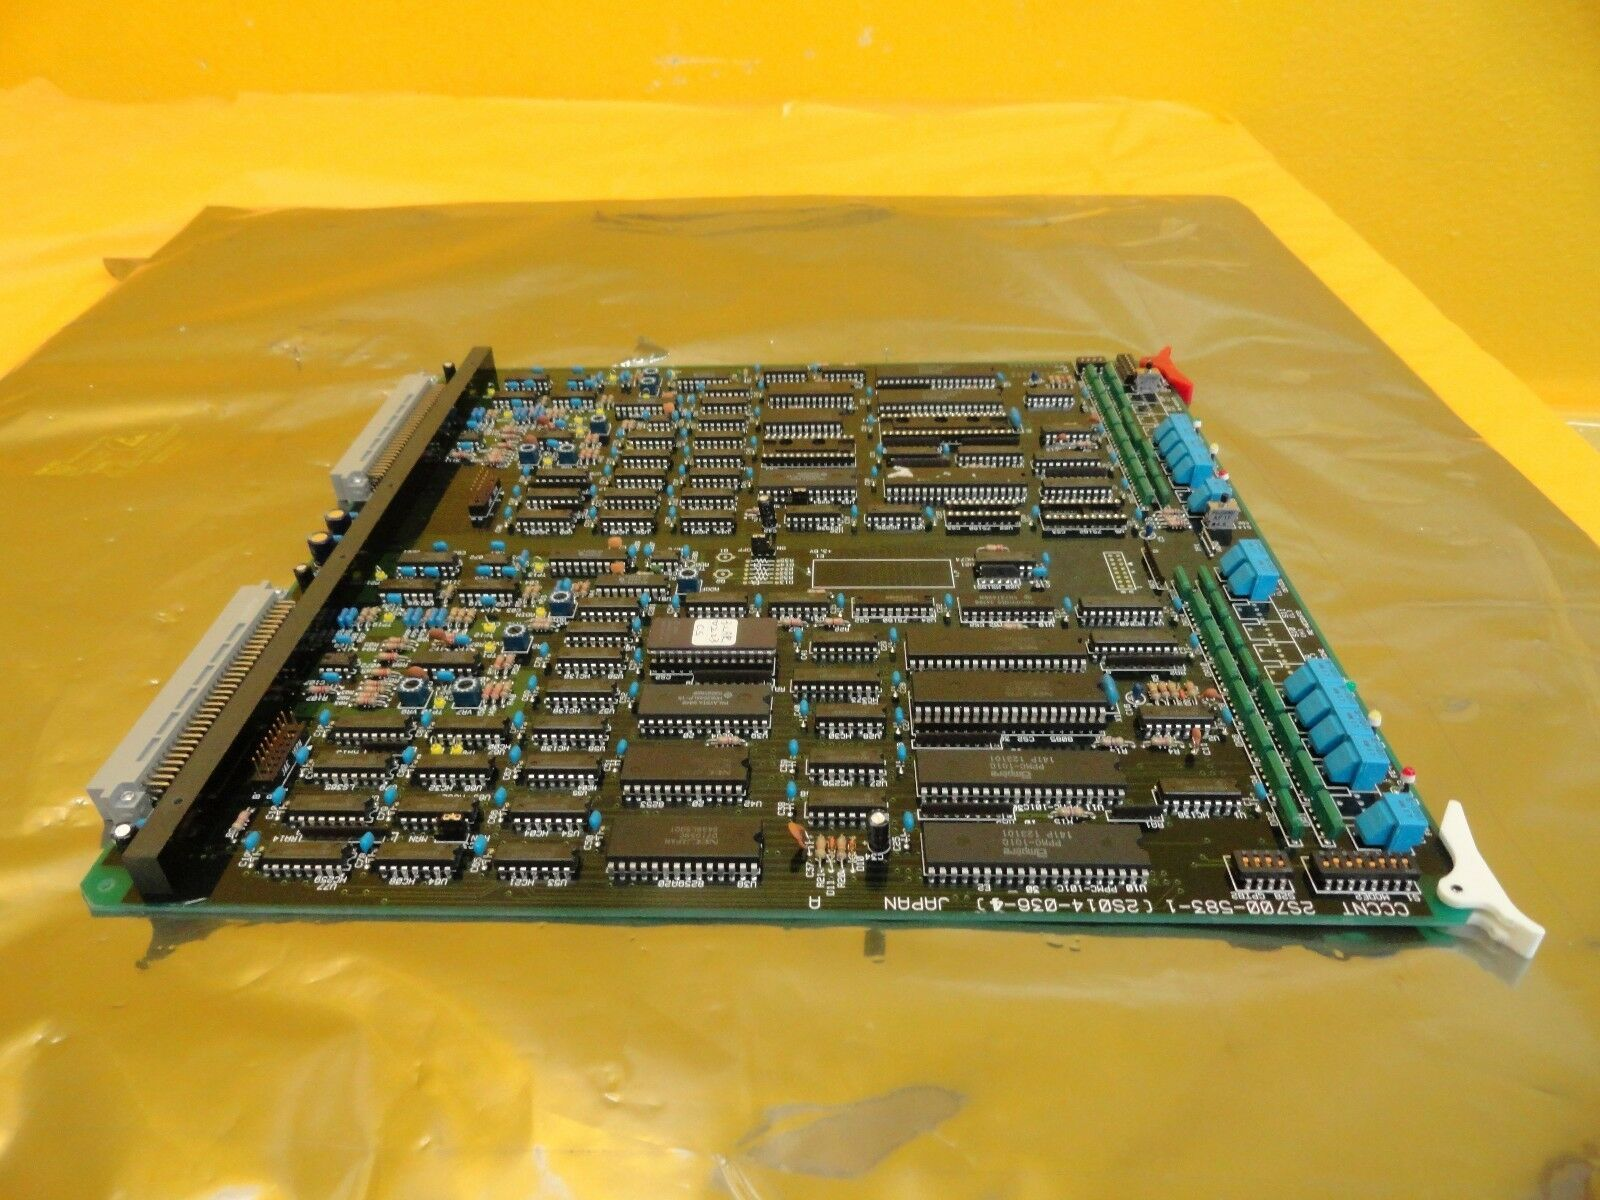 Nikon 2S700-583-1 CCCNT Board PCB Card 2S014-036-4 v2.23 OPTISTATION 3A Used